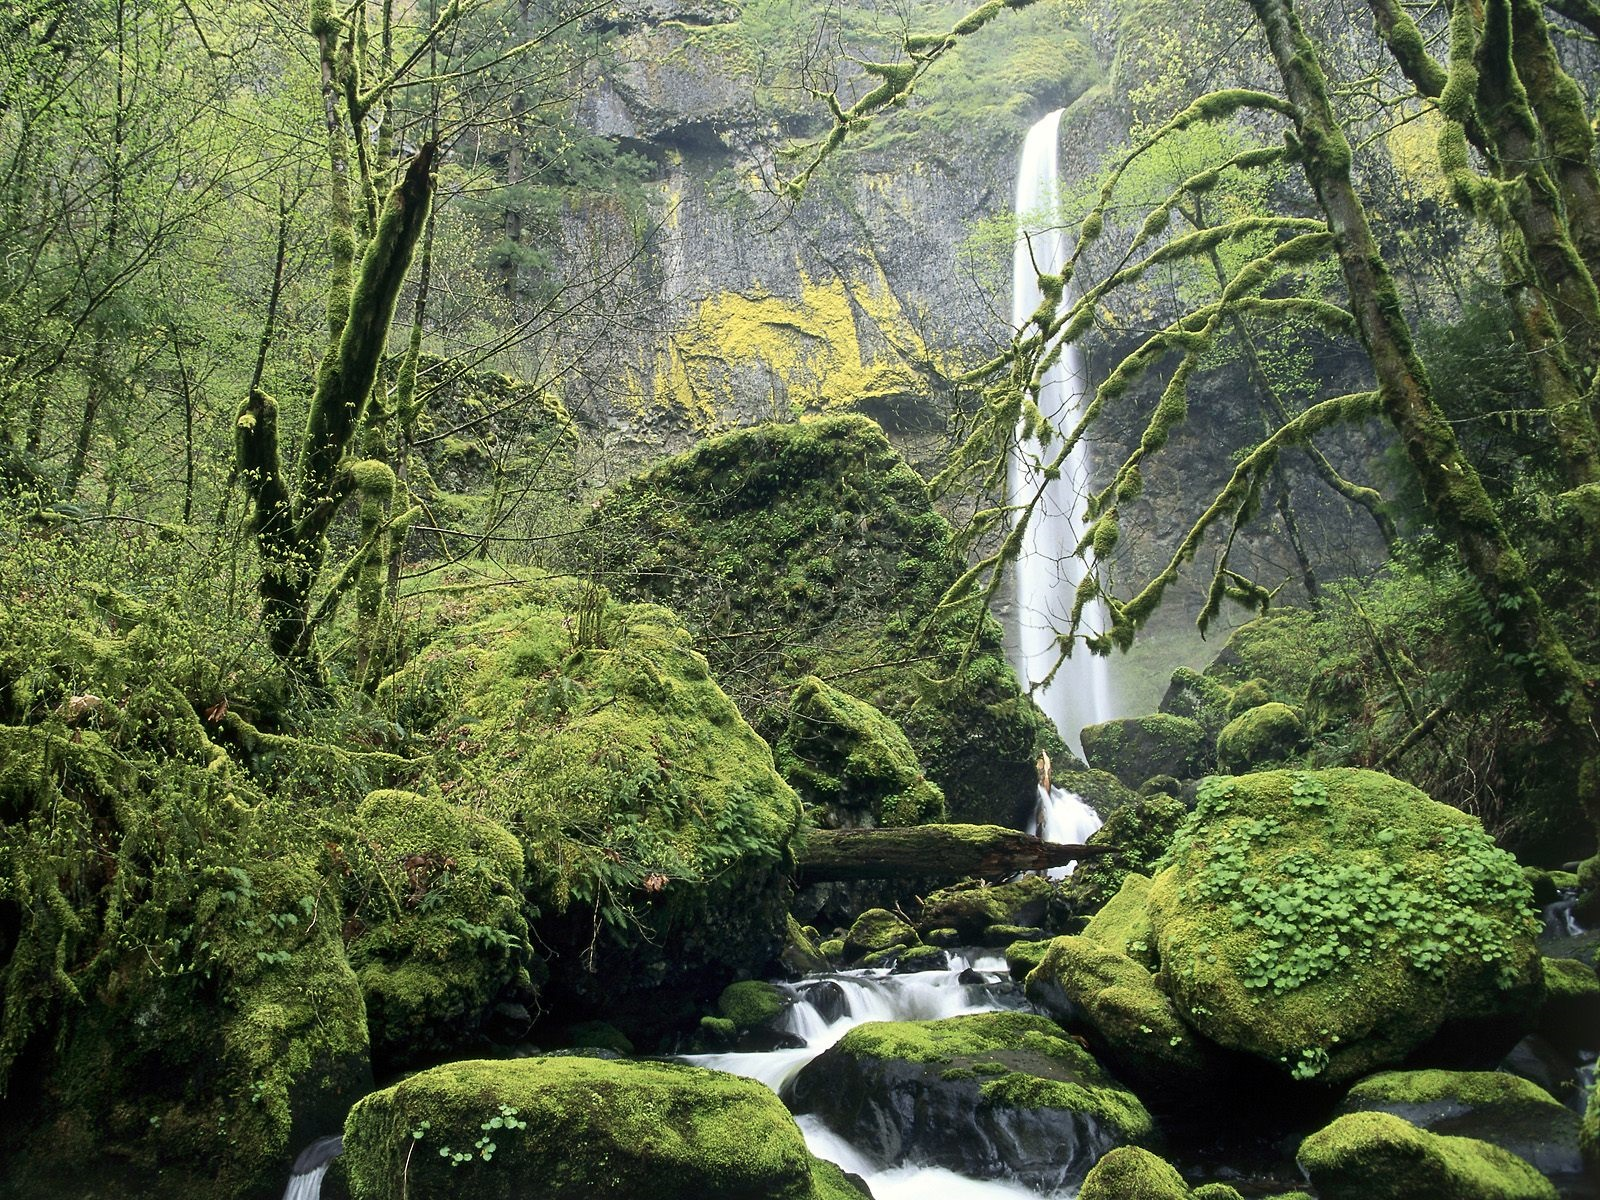 Waterfall, moss, stones, trees 1600x1200 wallpaper